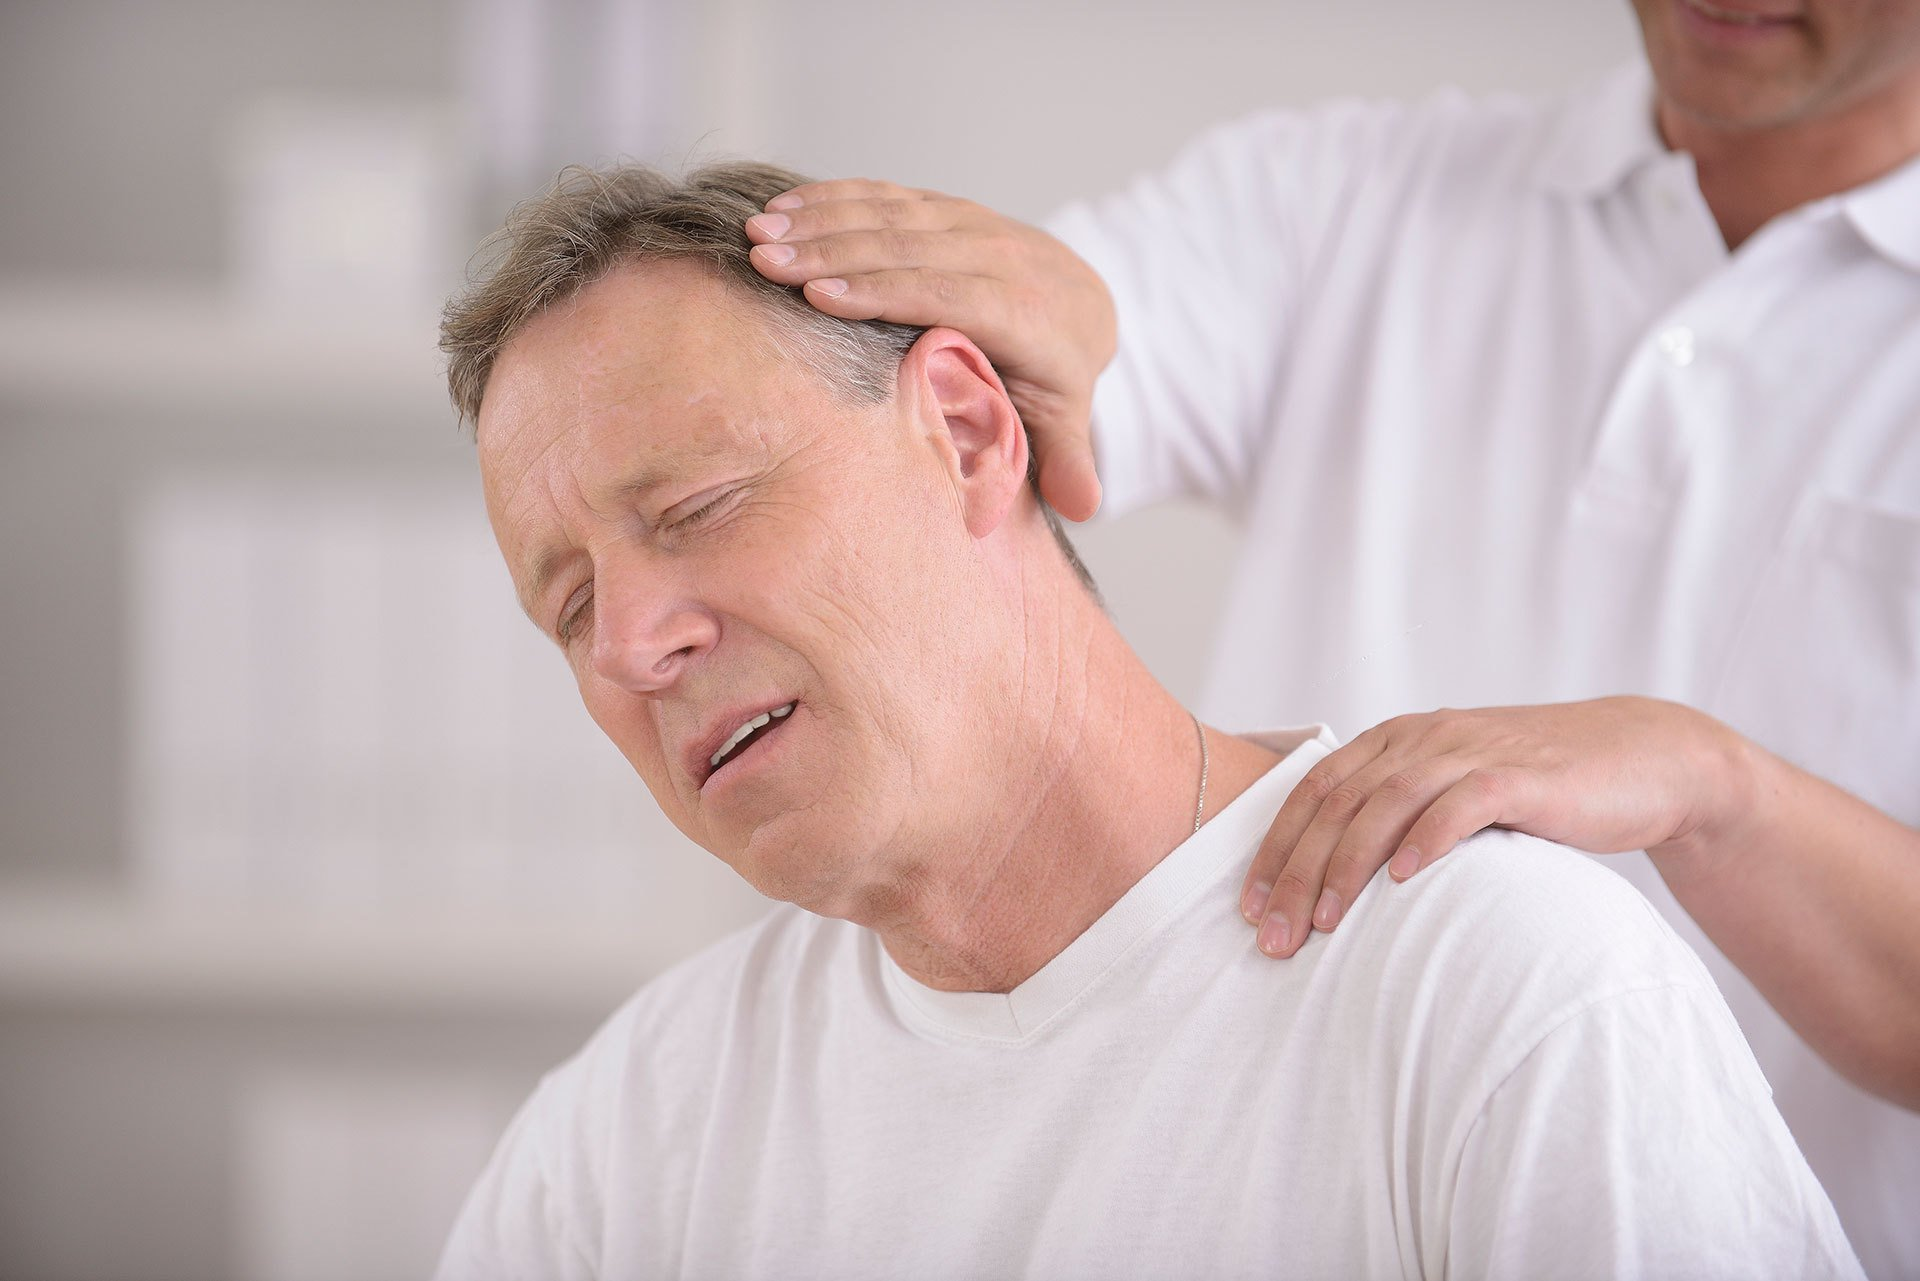 Neck Pain Treatment San Antonio, TX